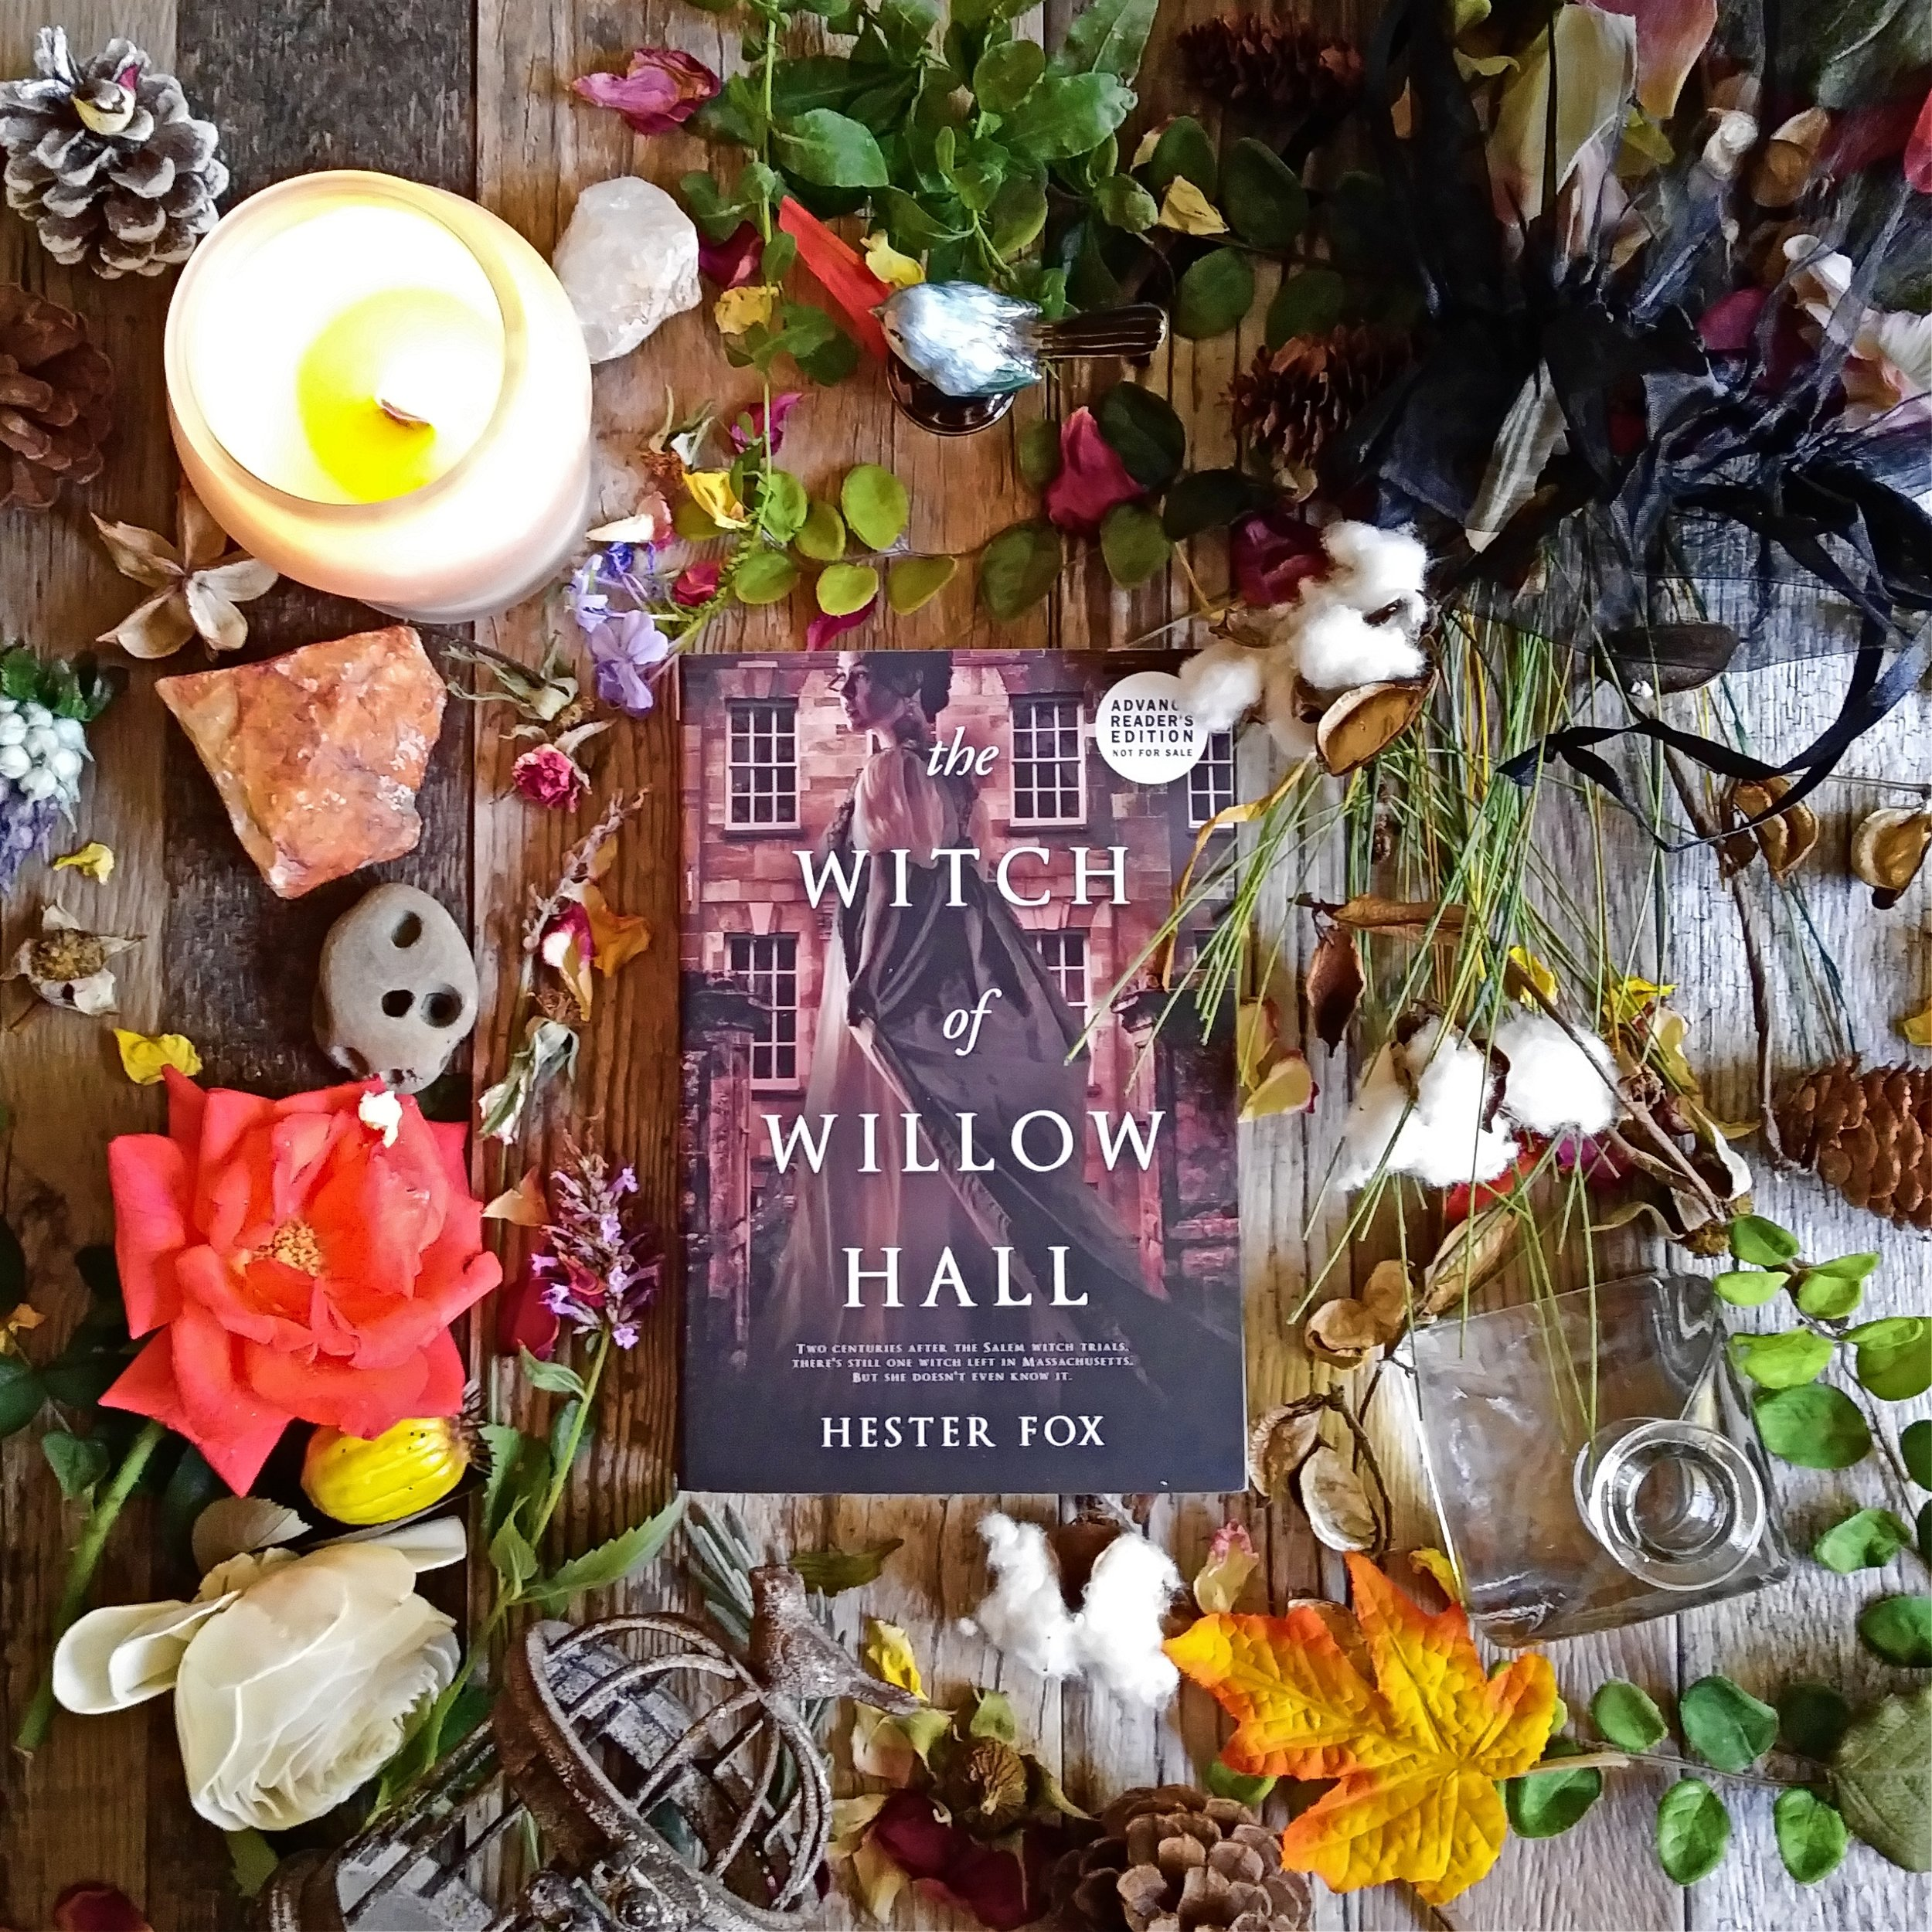 The Witch of Willow Hall Square by Hester Fox 20180913_122054.jpg